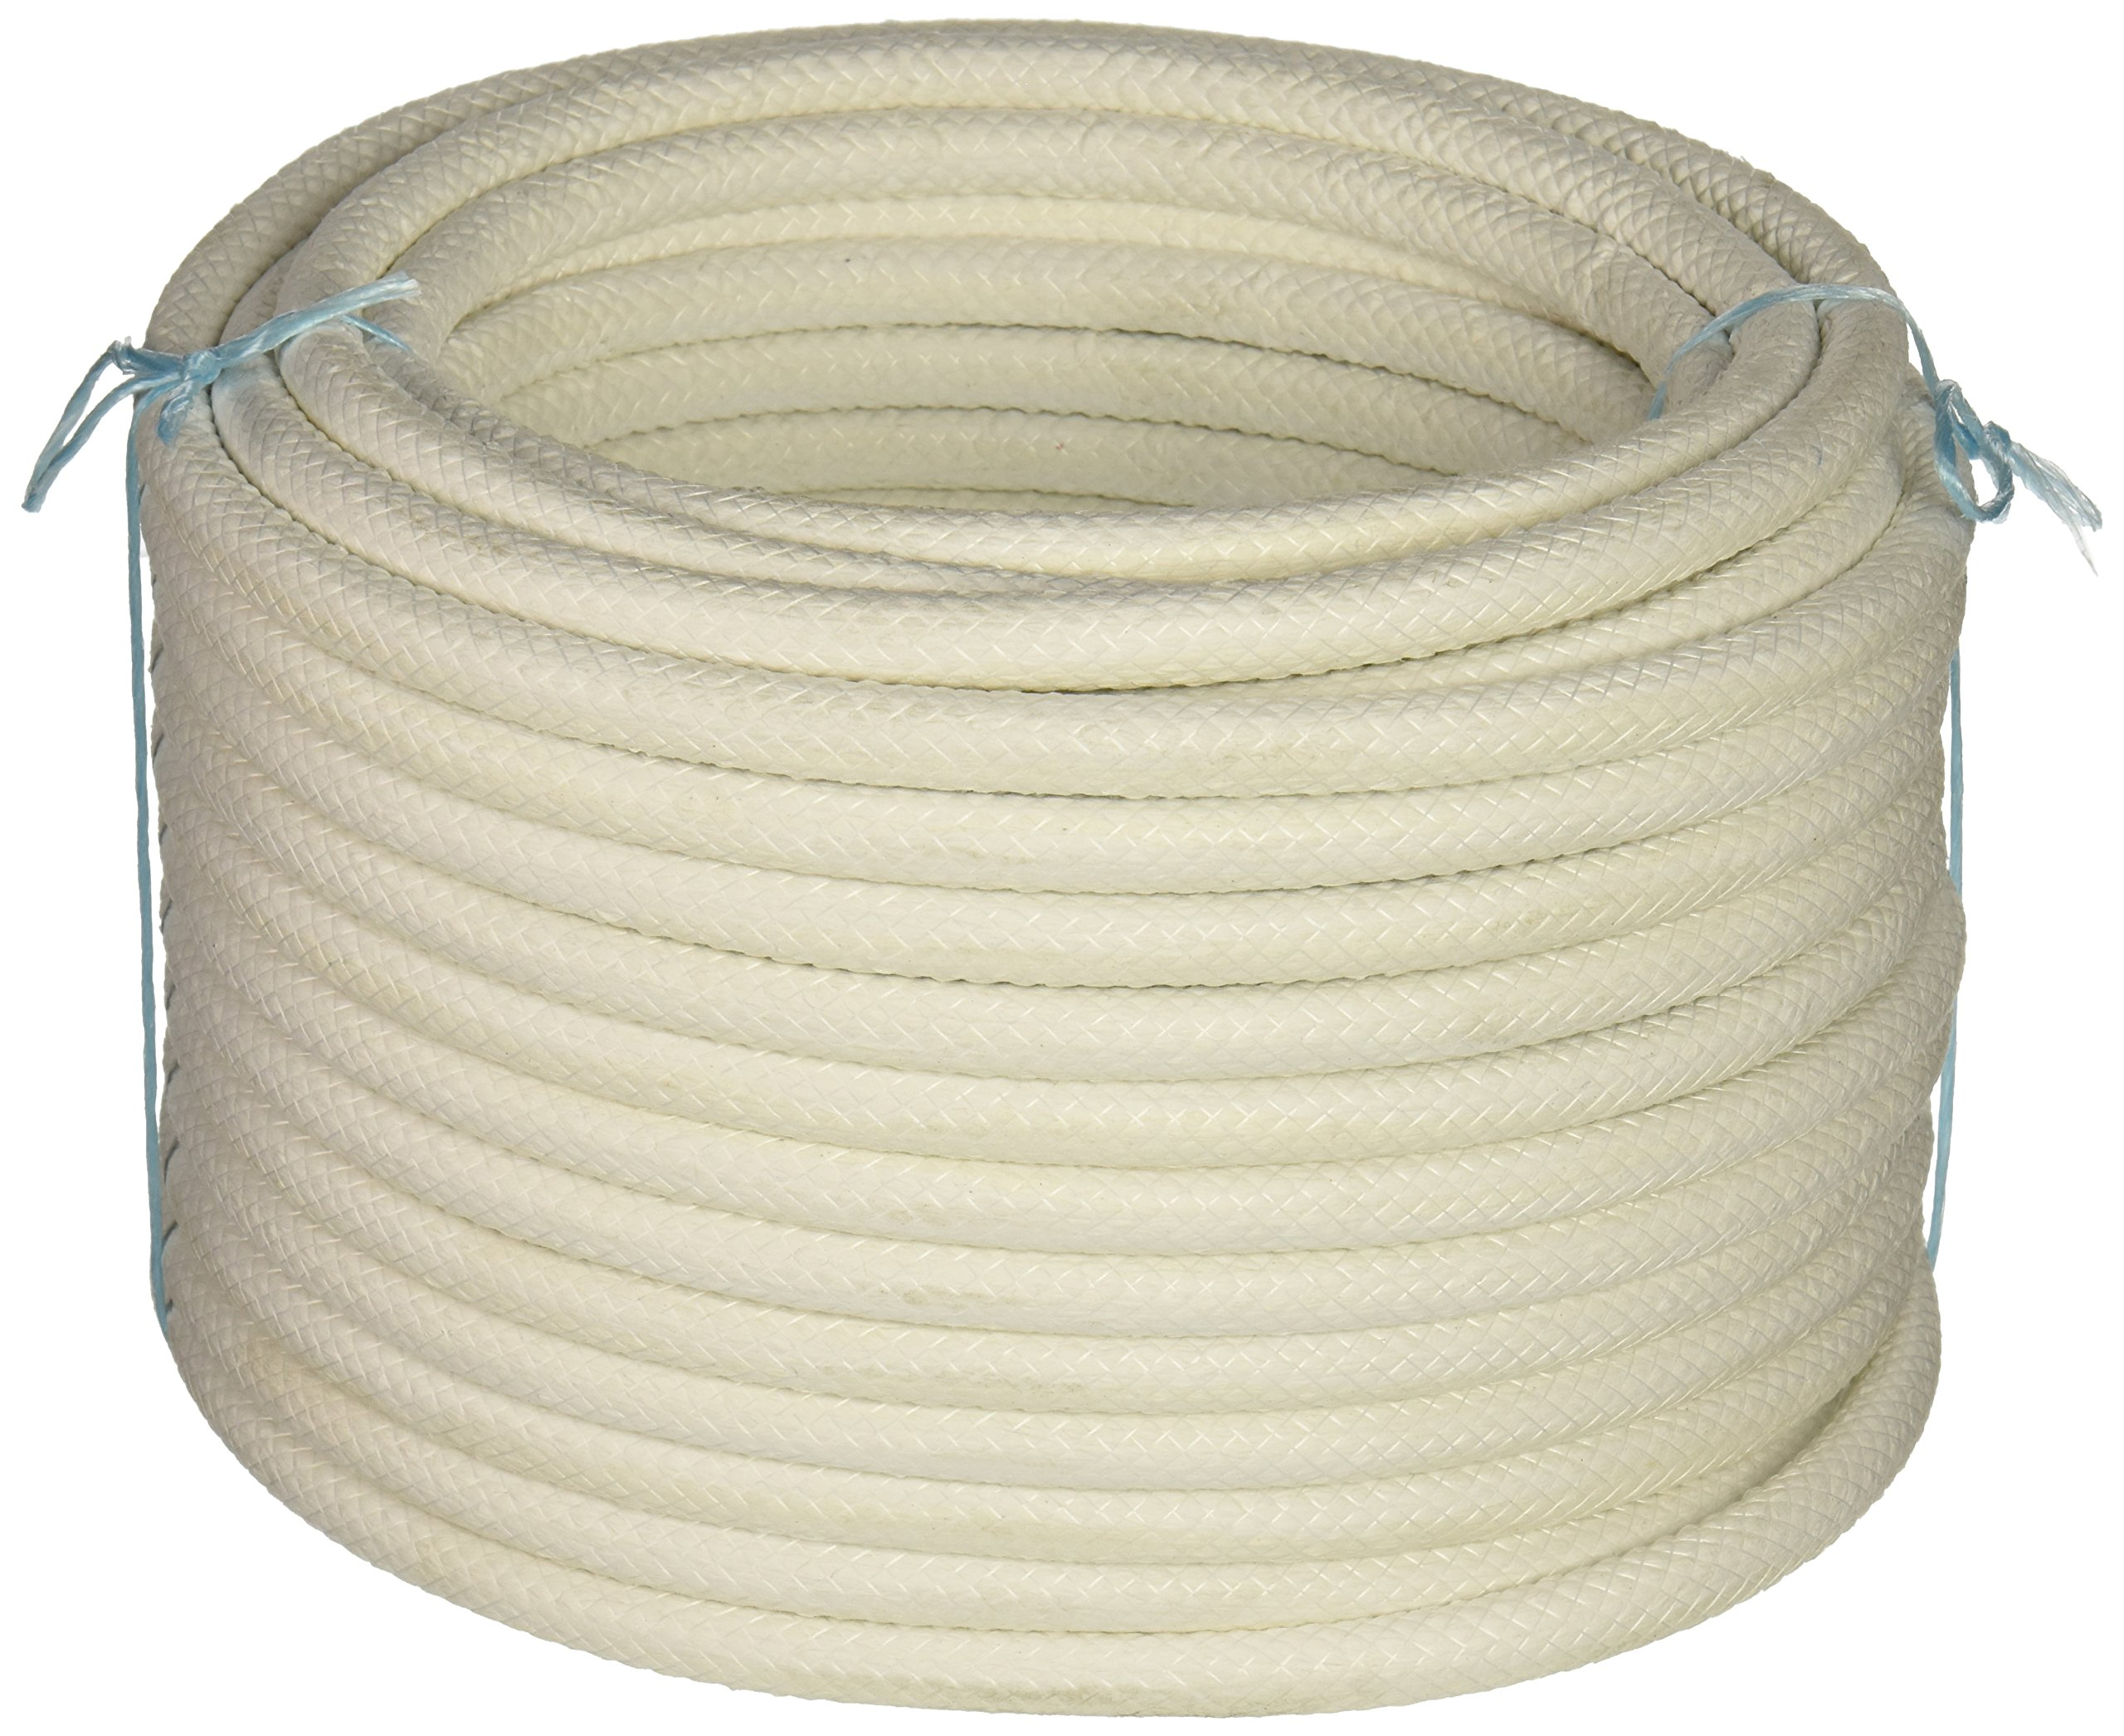 Pepperell Braiding Coiling Cord, 1/2 Inch x 100 feet, White by Pepperell Braiding